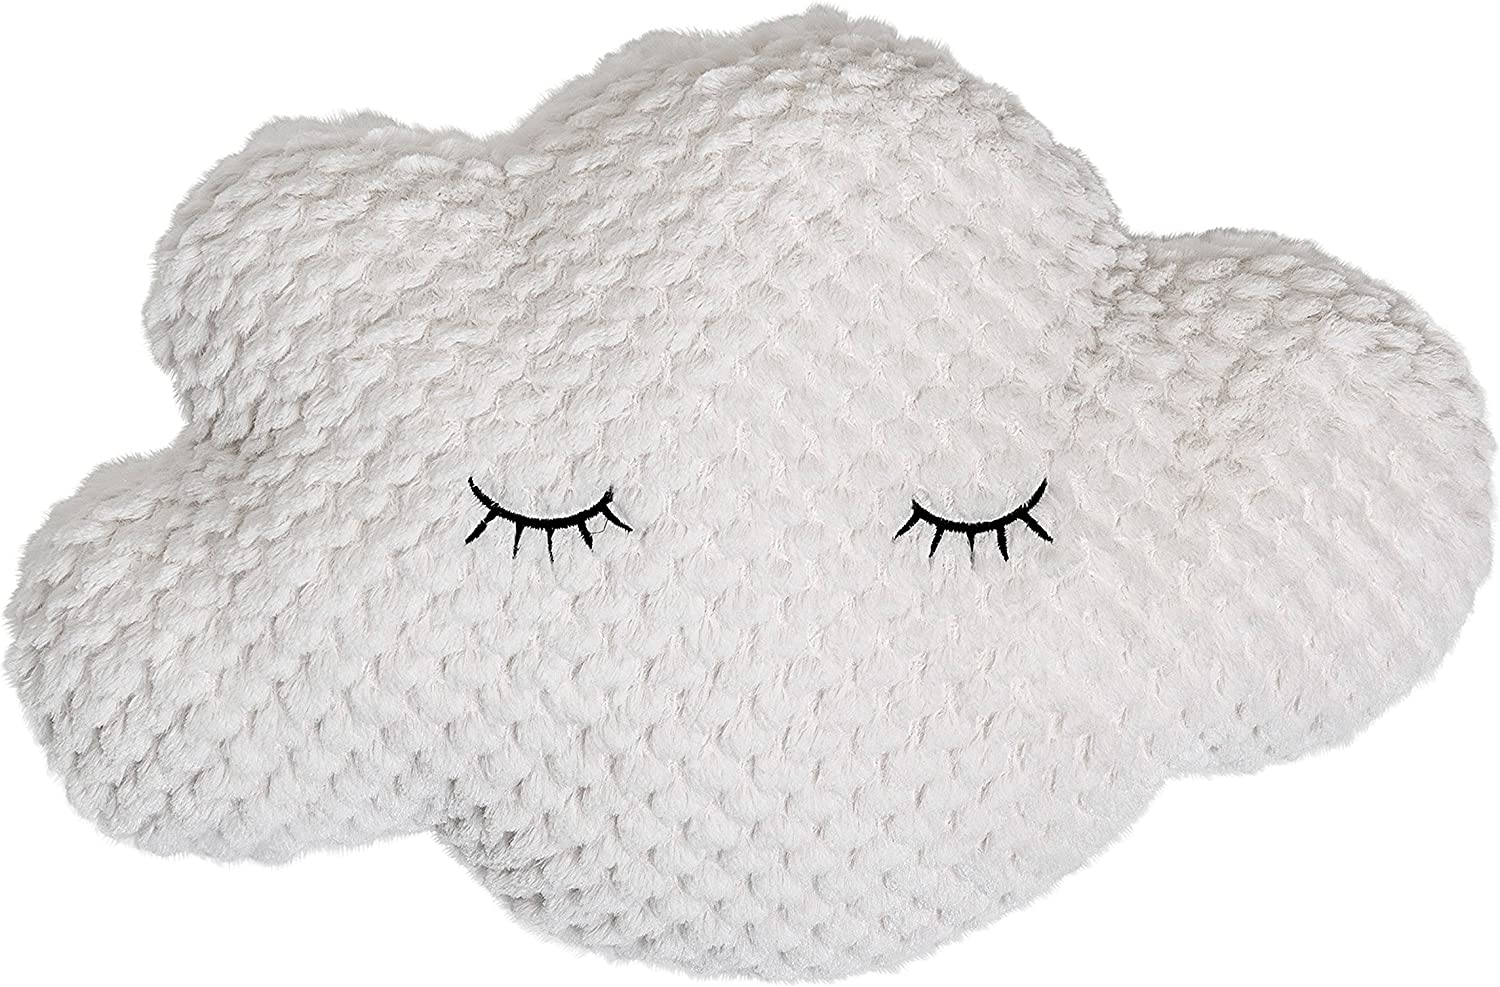 Bloomingville A75116280 Polyester White Cloud Pillow with Eyelashes